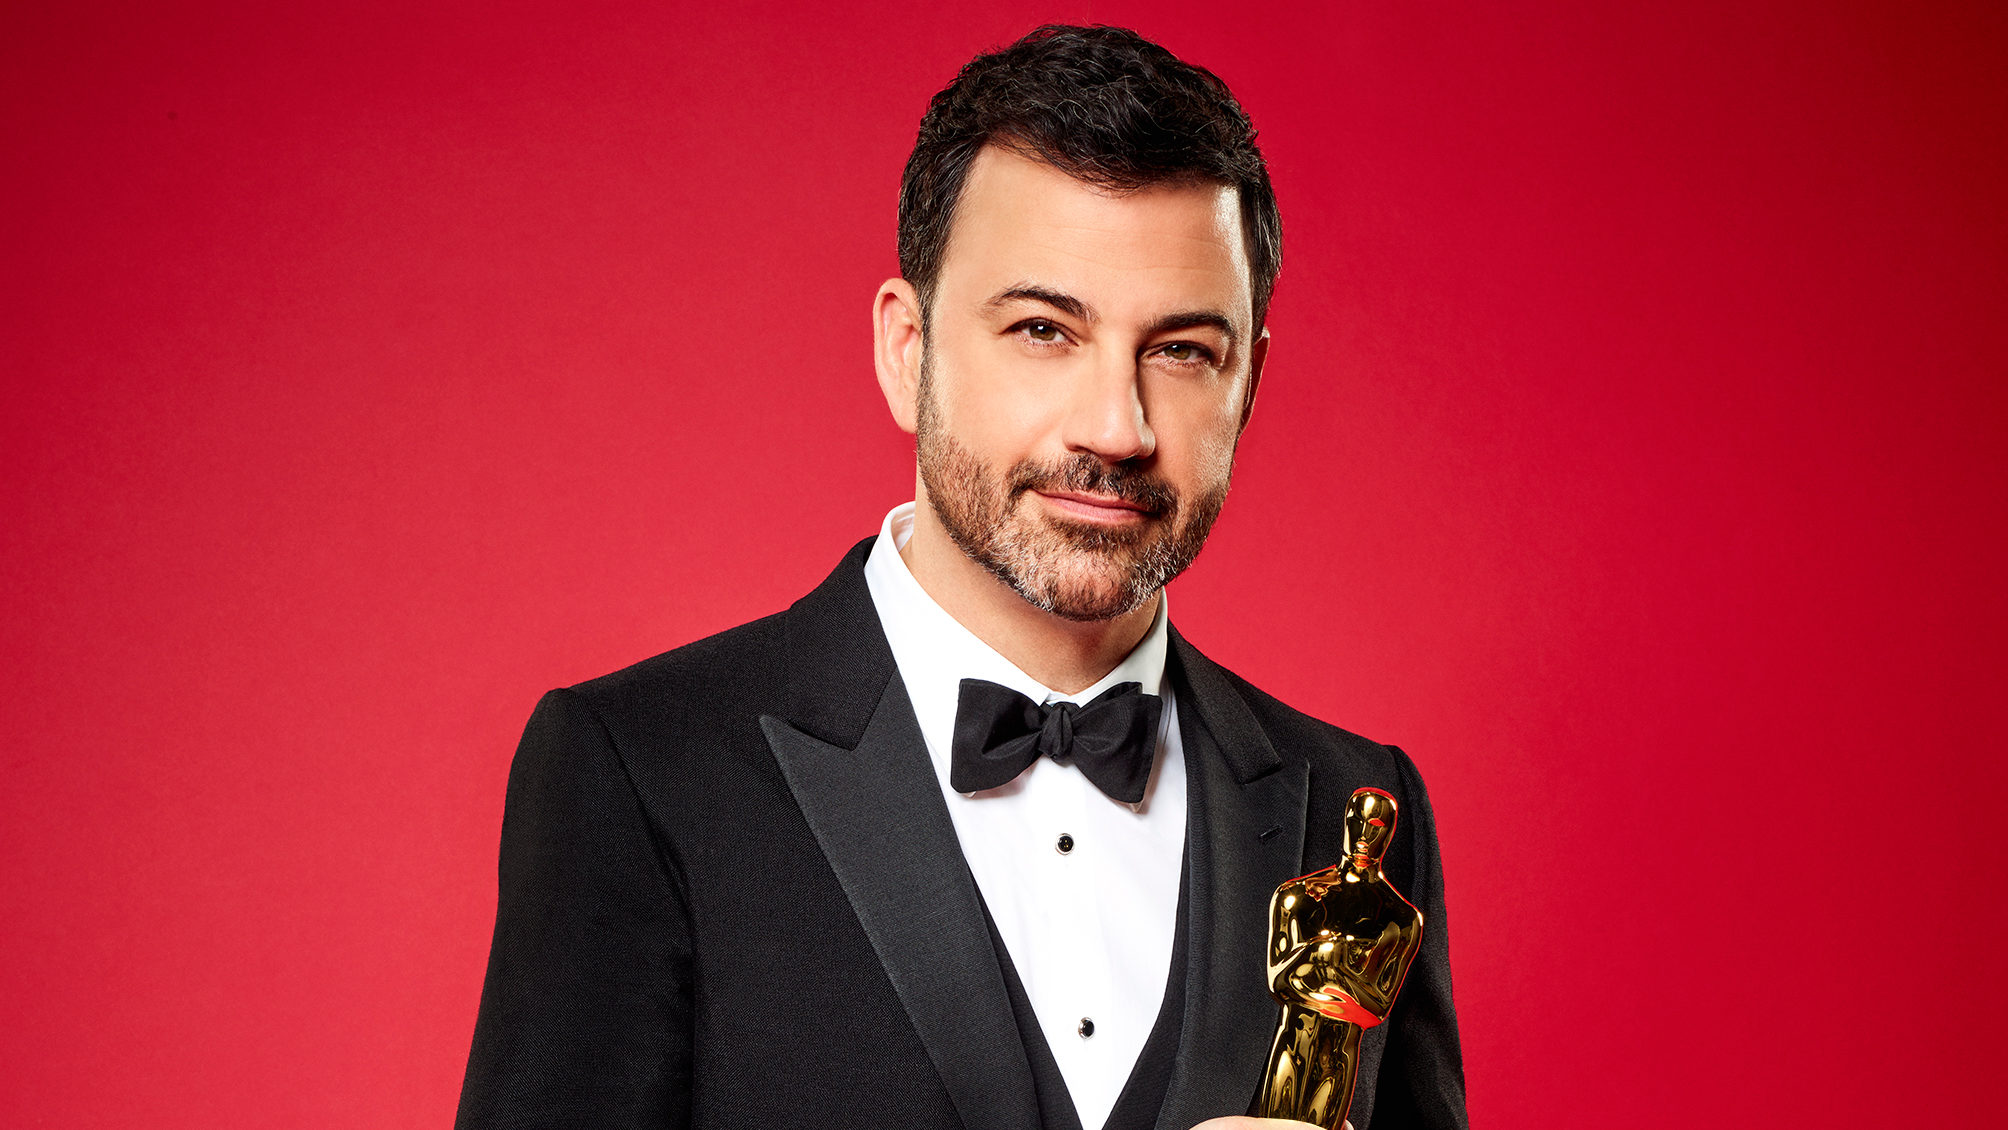 Oscars 2020 Host Updates Will the Academy Awards be Hostless or There will be Multiple Hosts